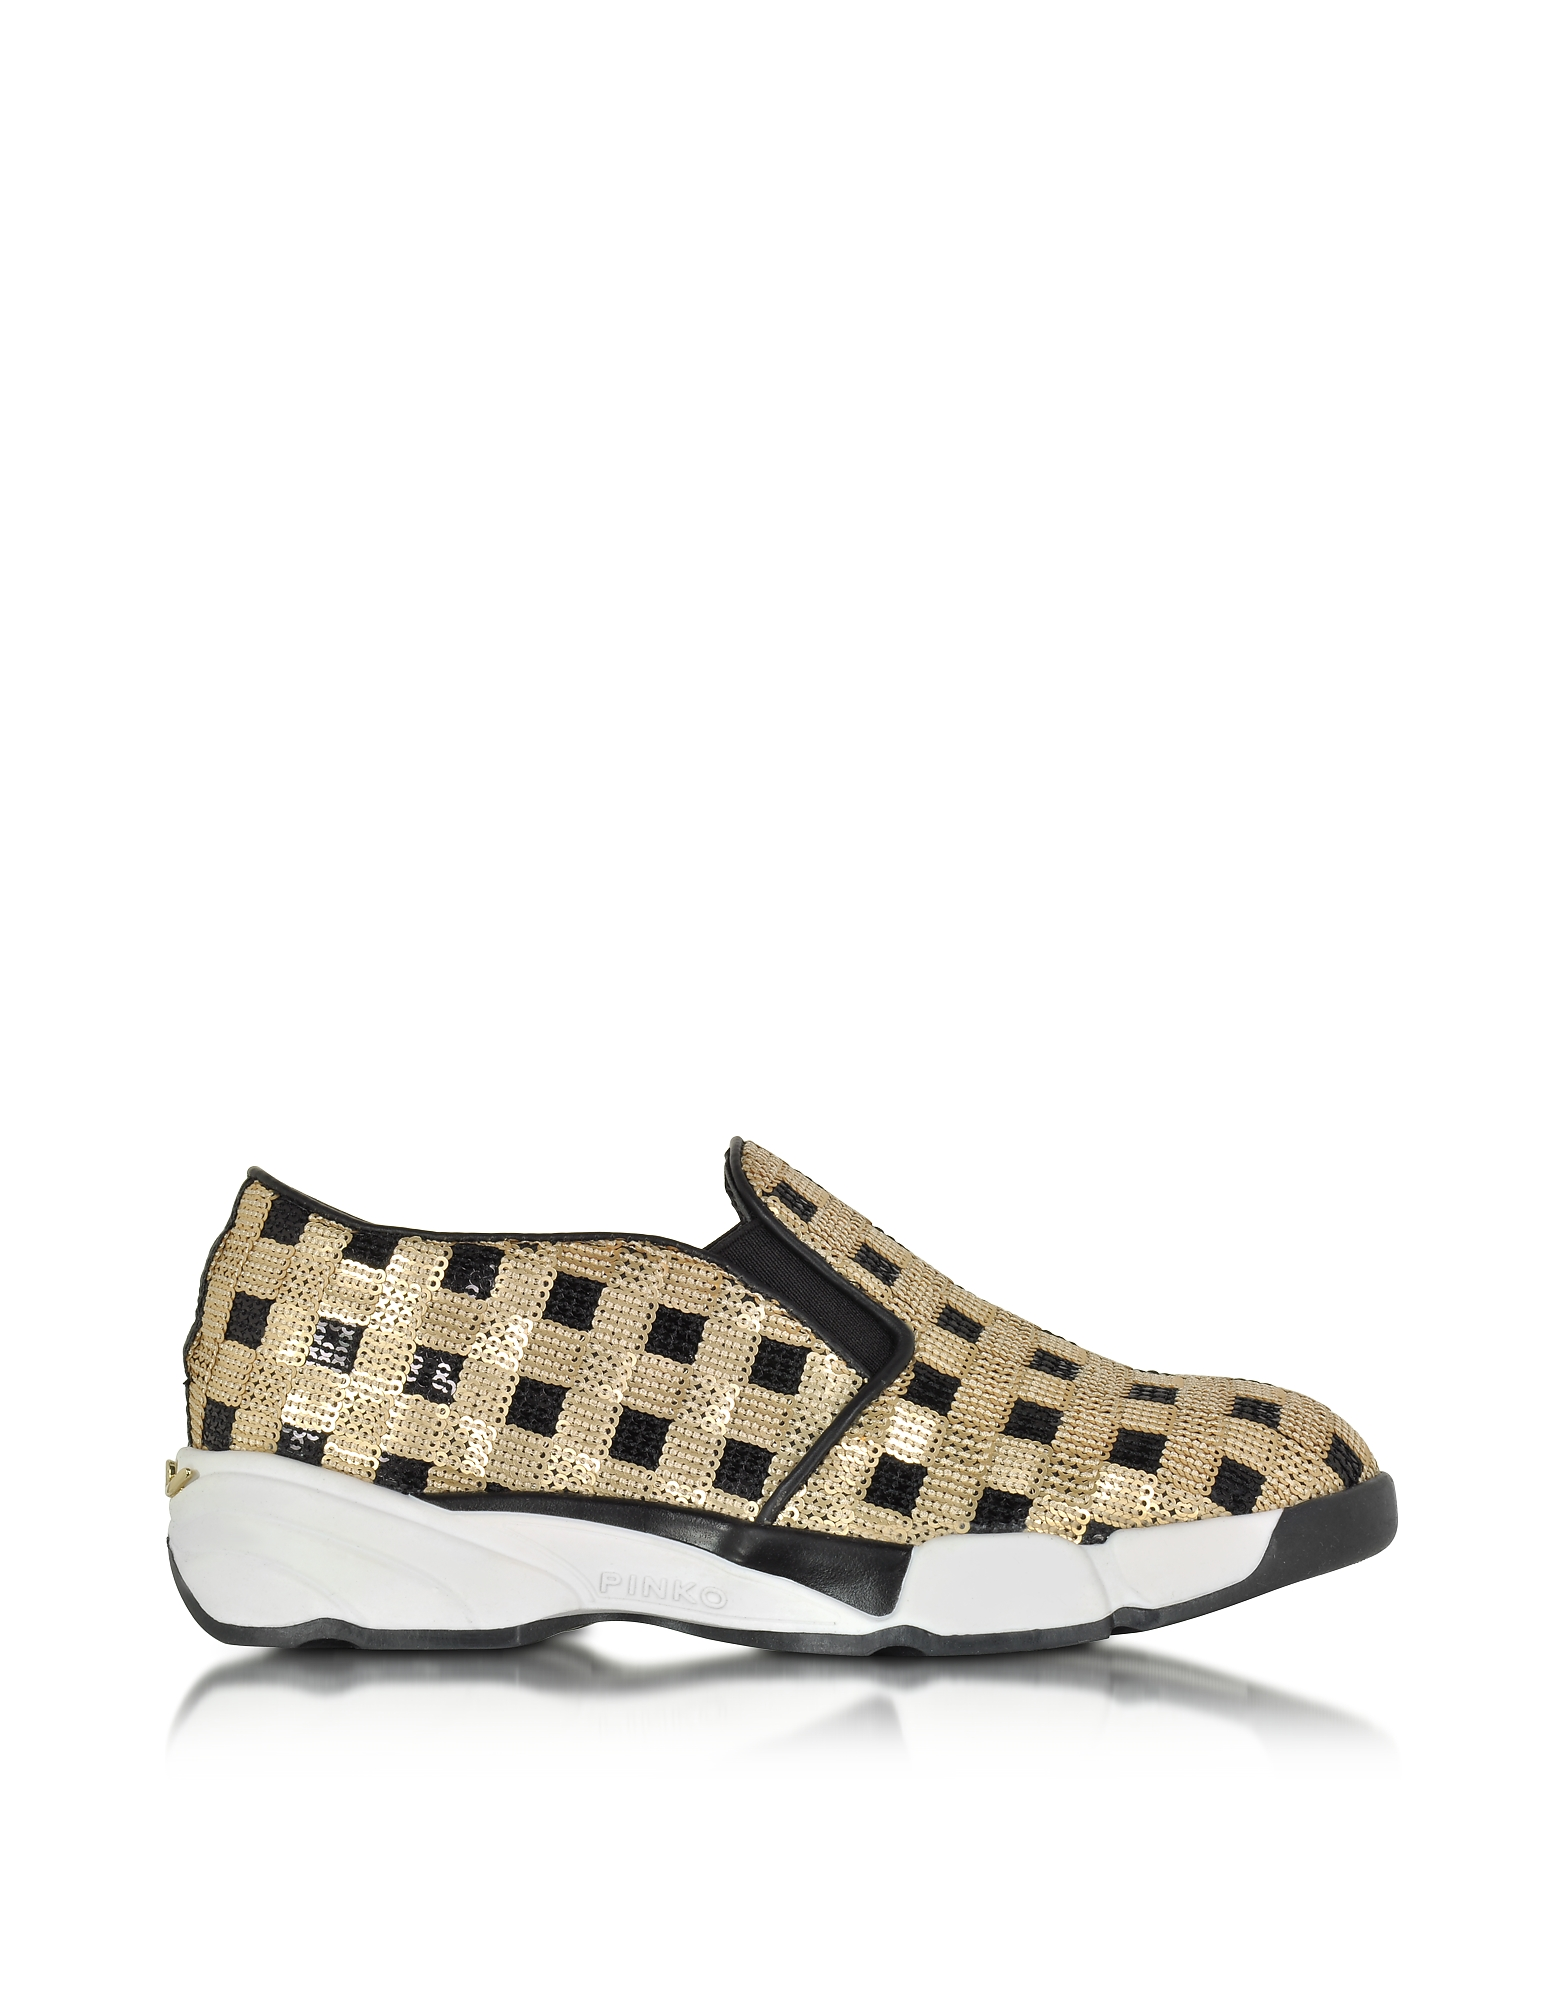 Pinko Shoes, Sequins Gold Fabric Sneaker